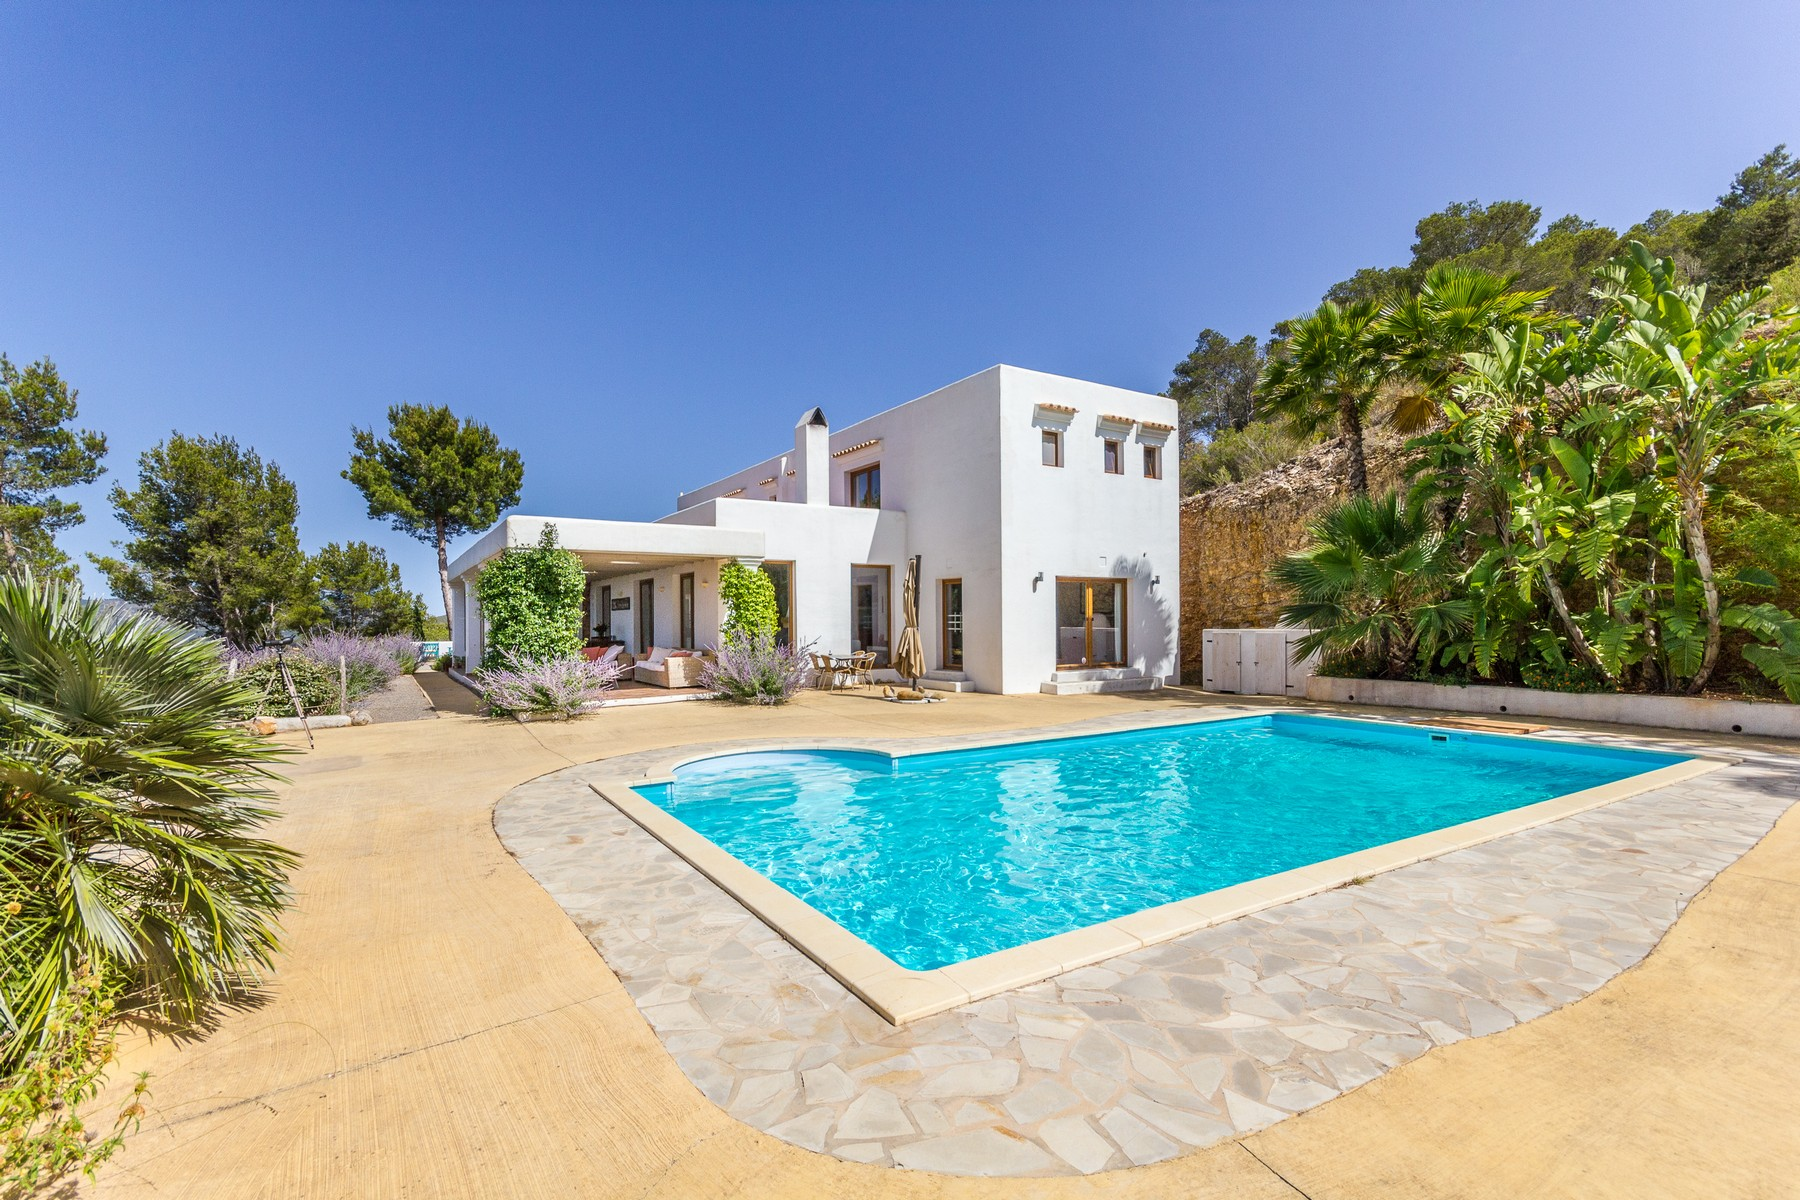 Single Family Home for Sale at Hilltop Villa with Panoramic Views in San Miguel San Juan, Ibiza 07810 Spain